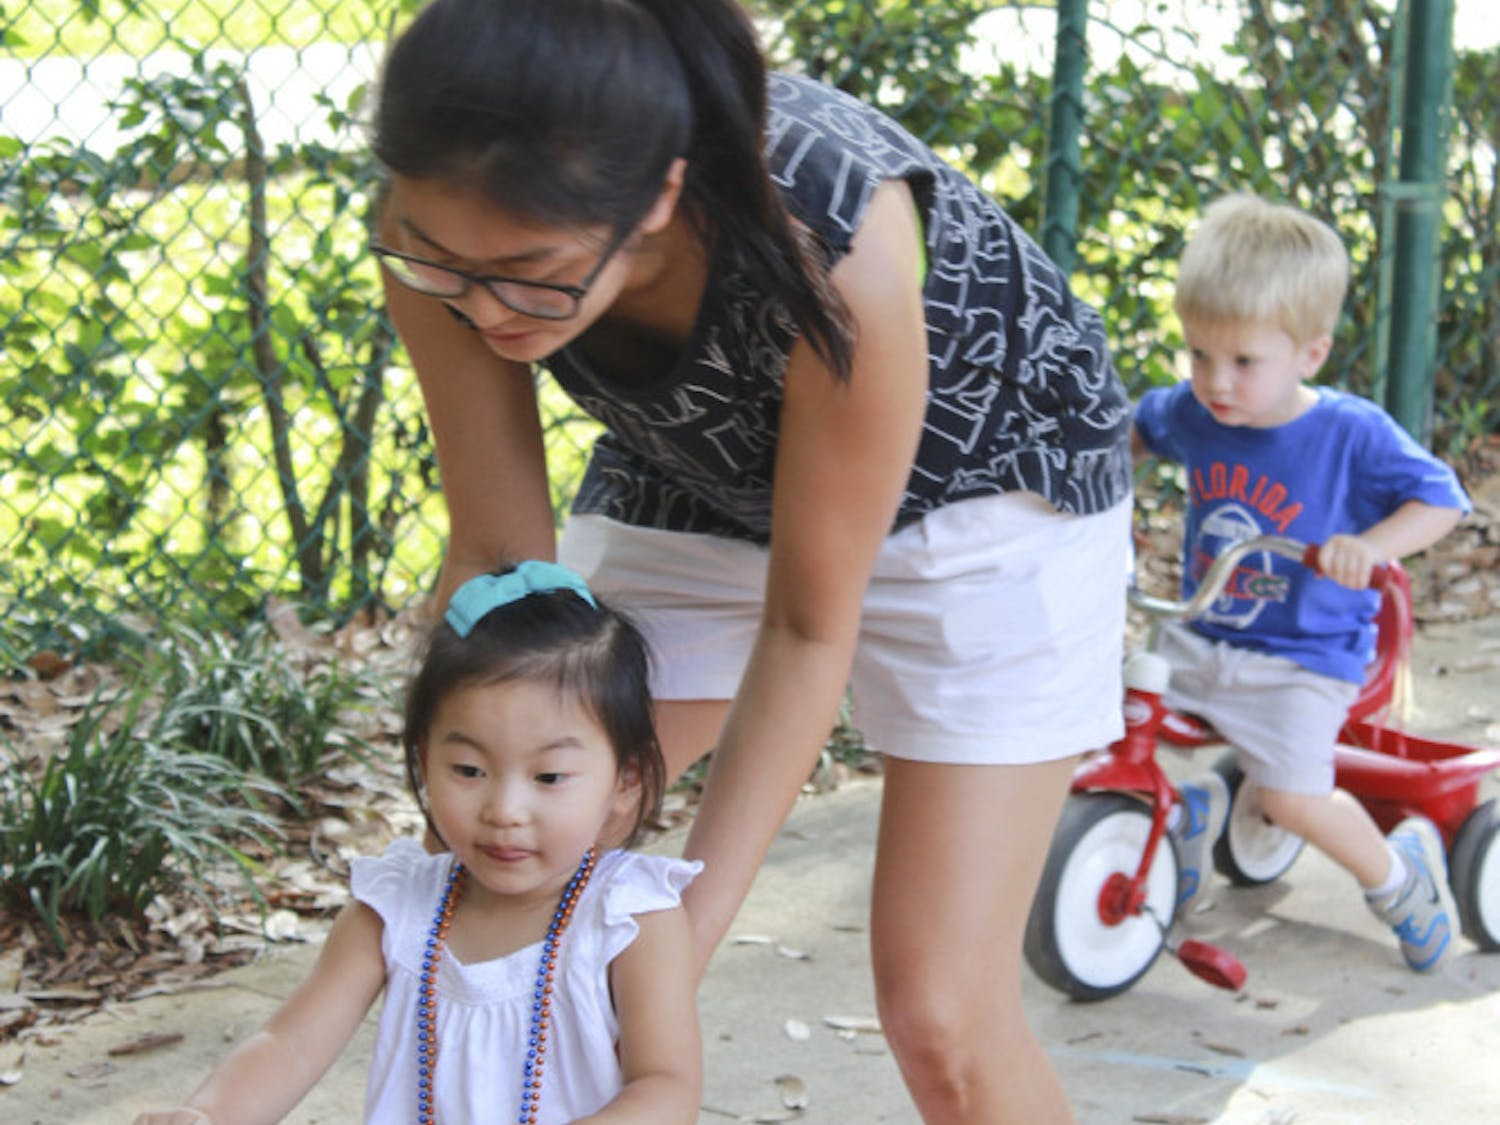 Former UF PhD student Soon Hye Yang, 34, pushes her 3-year-old daughter, Isu Yoon, on a tricycle at the Baby Gator daycare center on Nov. 5, 2015. Baby Gator's request for additional funding was denied, and without it, student parents like Yang may be cut from the program.